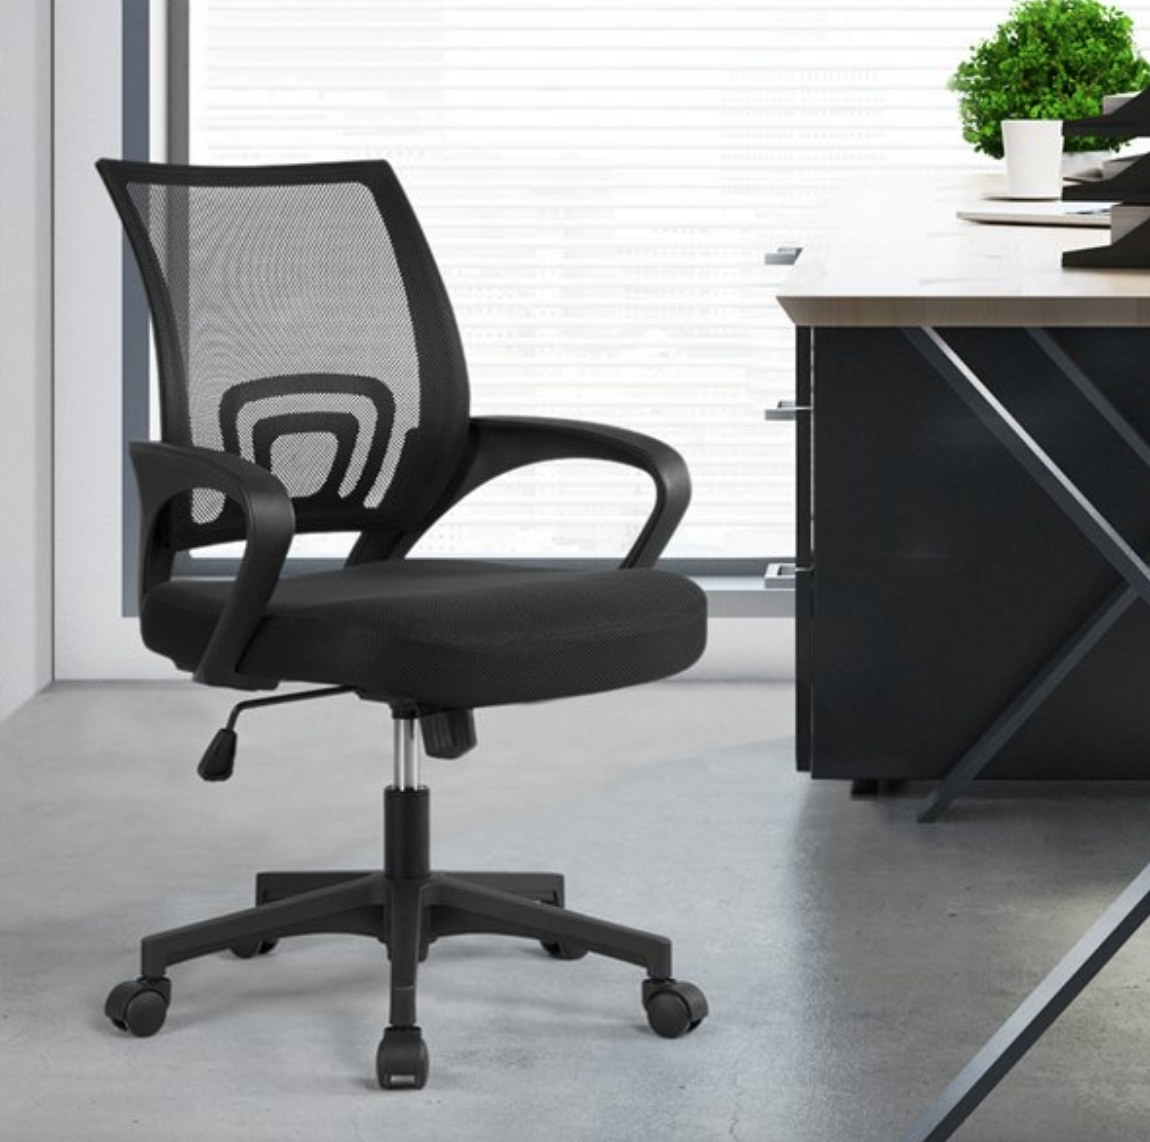 The chair in the color black